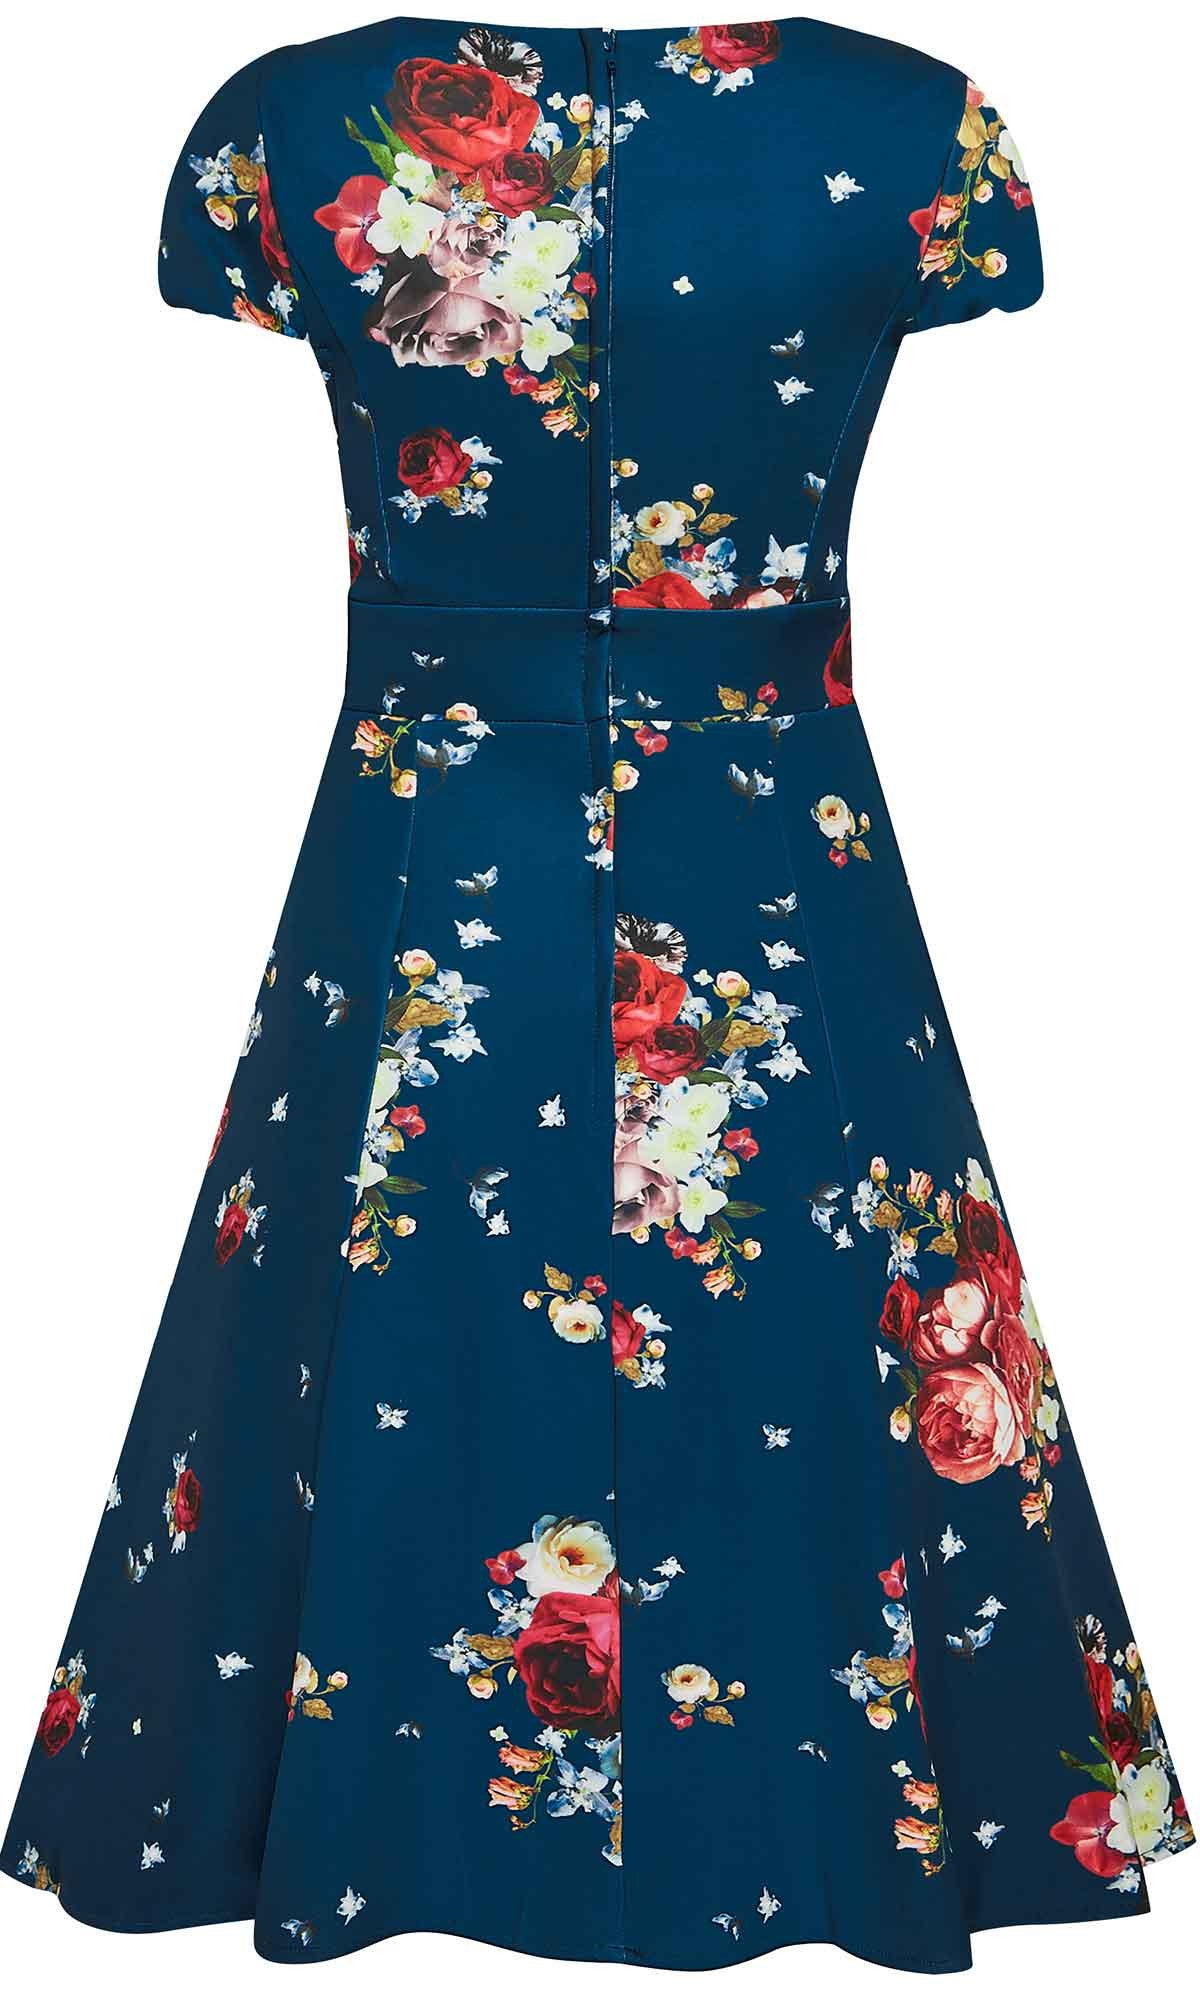 Claudia Teal Floral Swing Dress